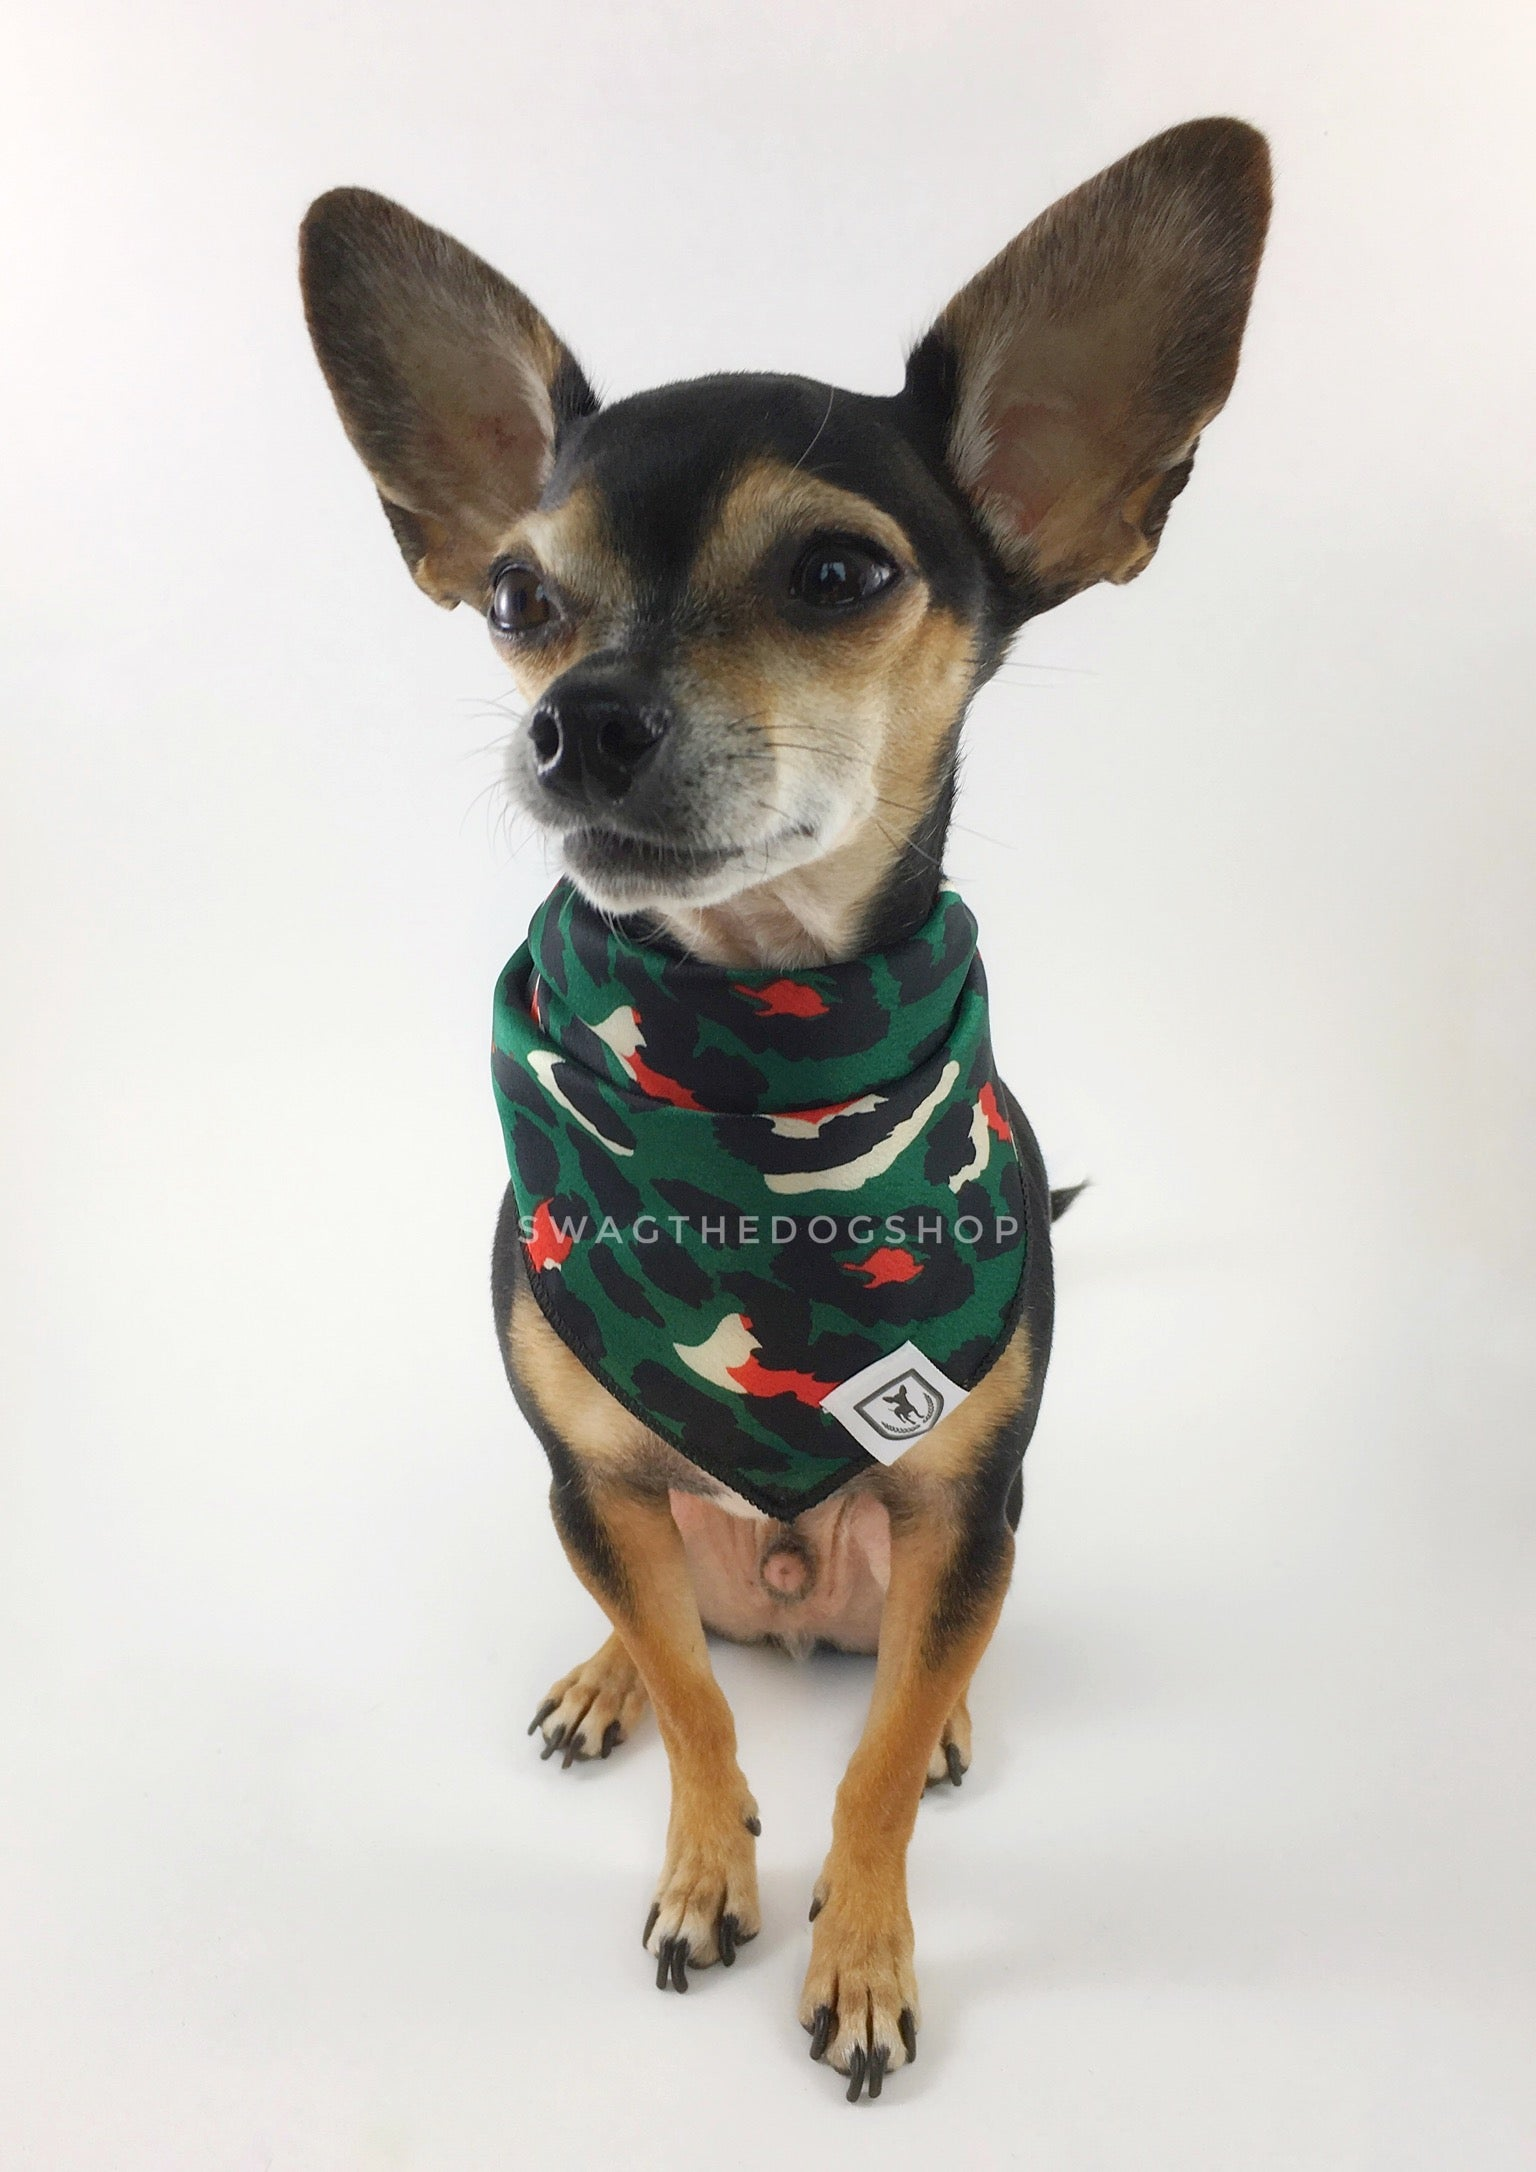 Fierce Forest Green with Red Swagdana Scarf - Full Frontal View of Cute Chihuahua Wearing Swagdana Scarf as Bandana. Dog Bandana. Dog Scarf